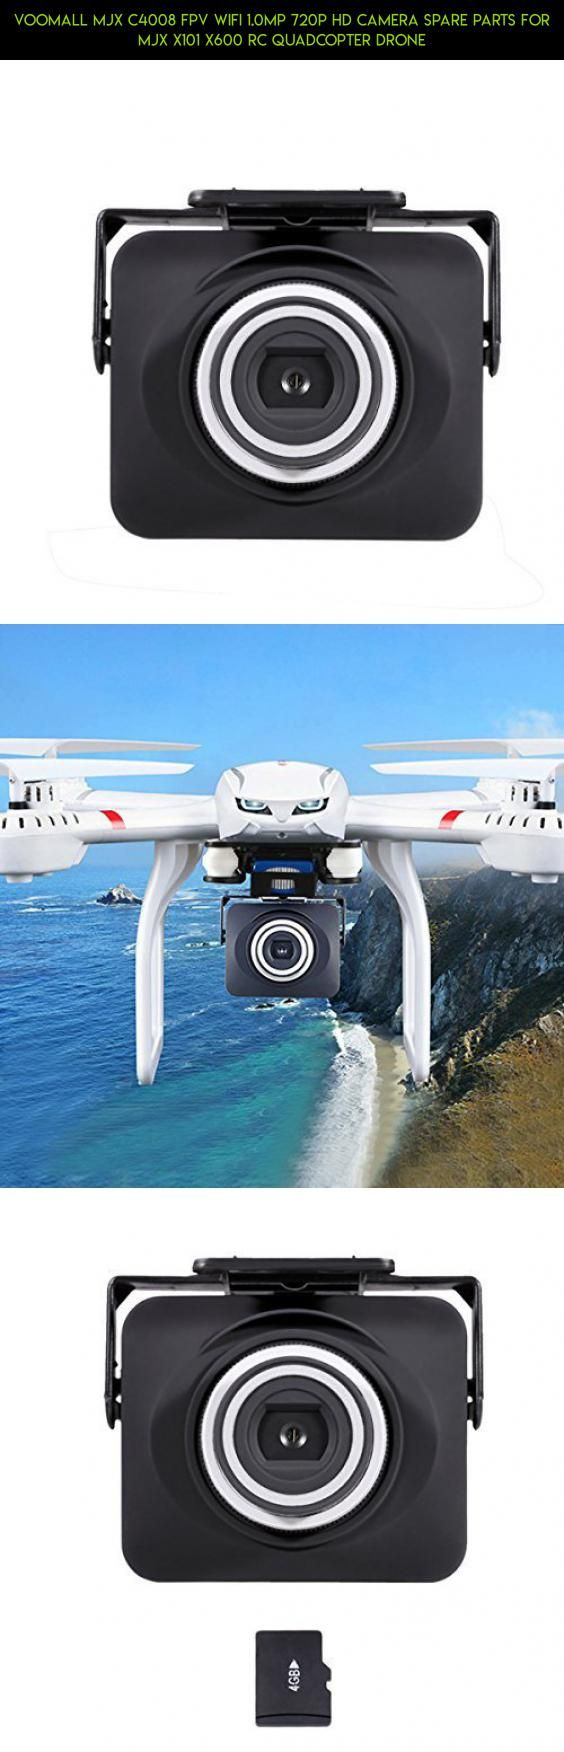 Voomall MJX C4008 FPV WIFI 1.0MP 720p HD Camera Spare Parts for MJX X101 X600 RC Quadcopter Drone #camera #parts #kit #technology #mjx #tech #racing #plans #shopping #products #fpv #c4008 #gadgets #drone #camera